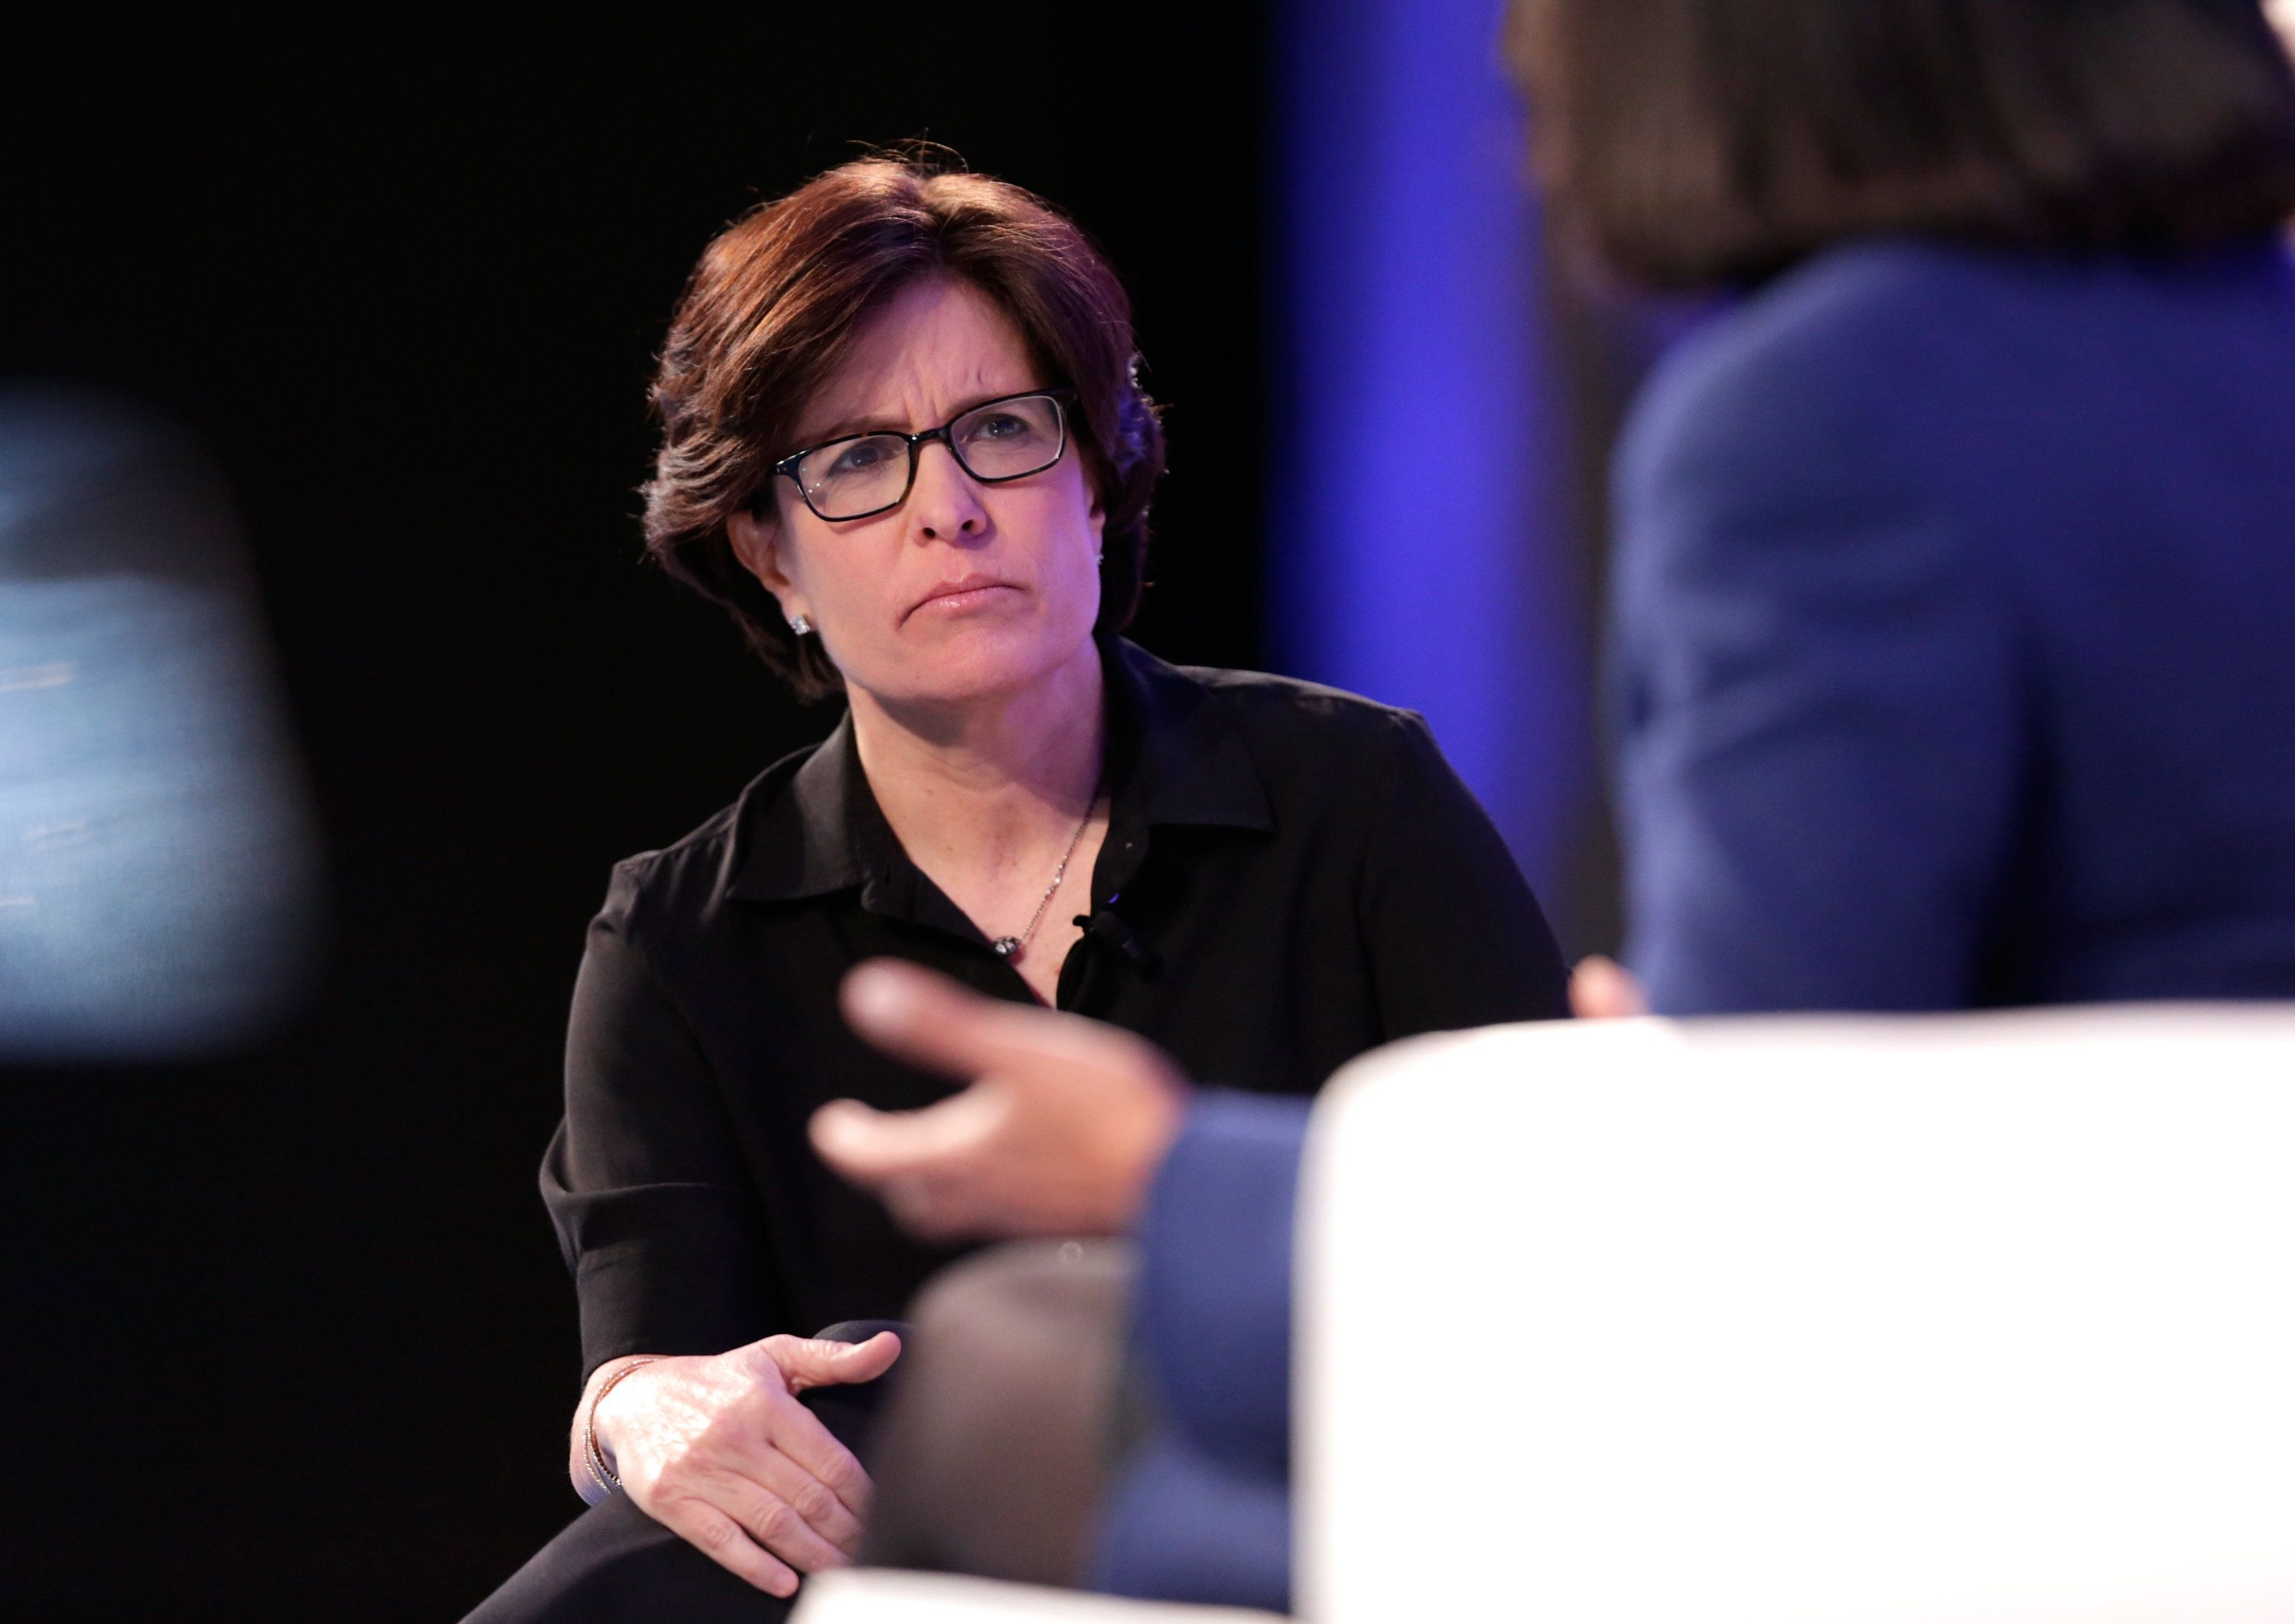 SAN JOSE, CA - FEBRUARY 01:  Journalist Kara Swisher speaks at the Watermark Conference for Women at San Jose Convention Center on February 1, 2017 in San Jose, California.  (Photo by Marla Aufmuth/Getty Images for Watermark Conference for Women  )